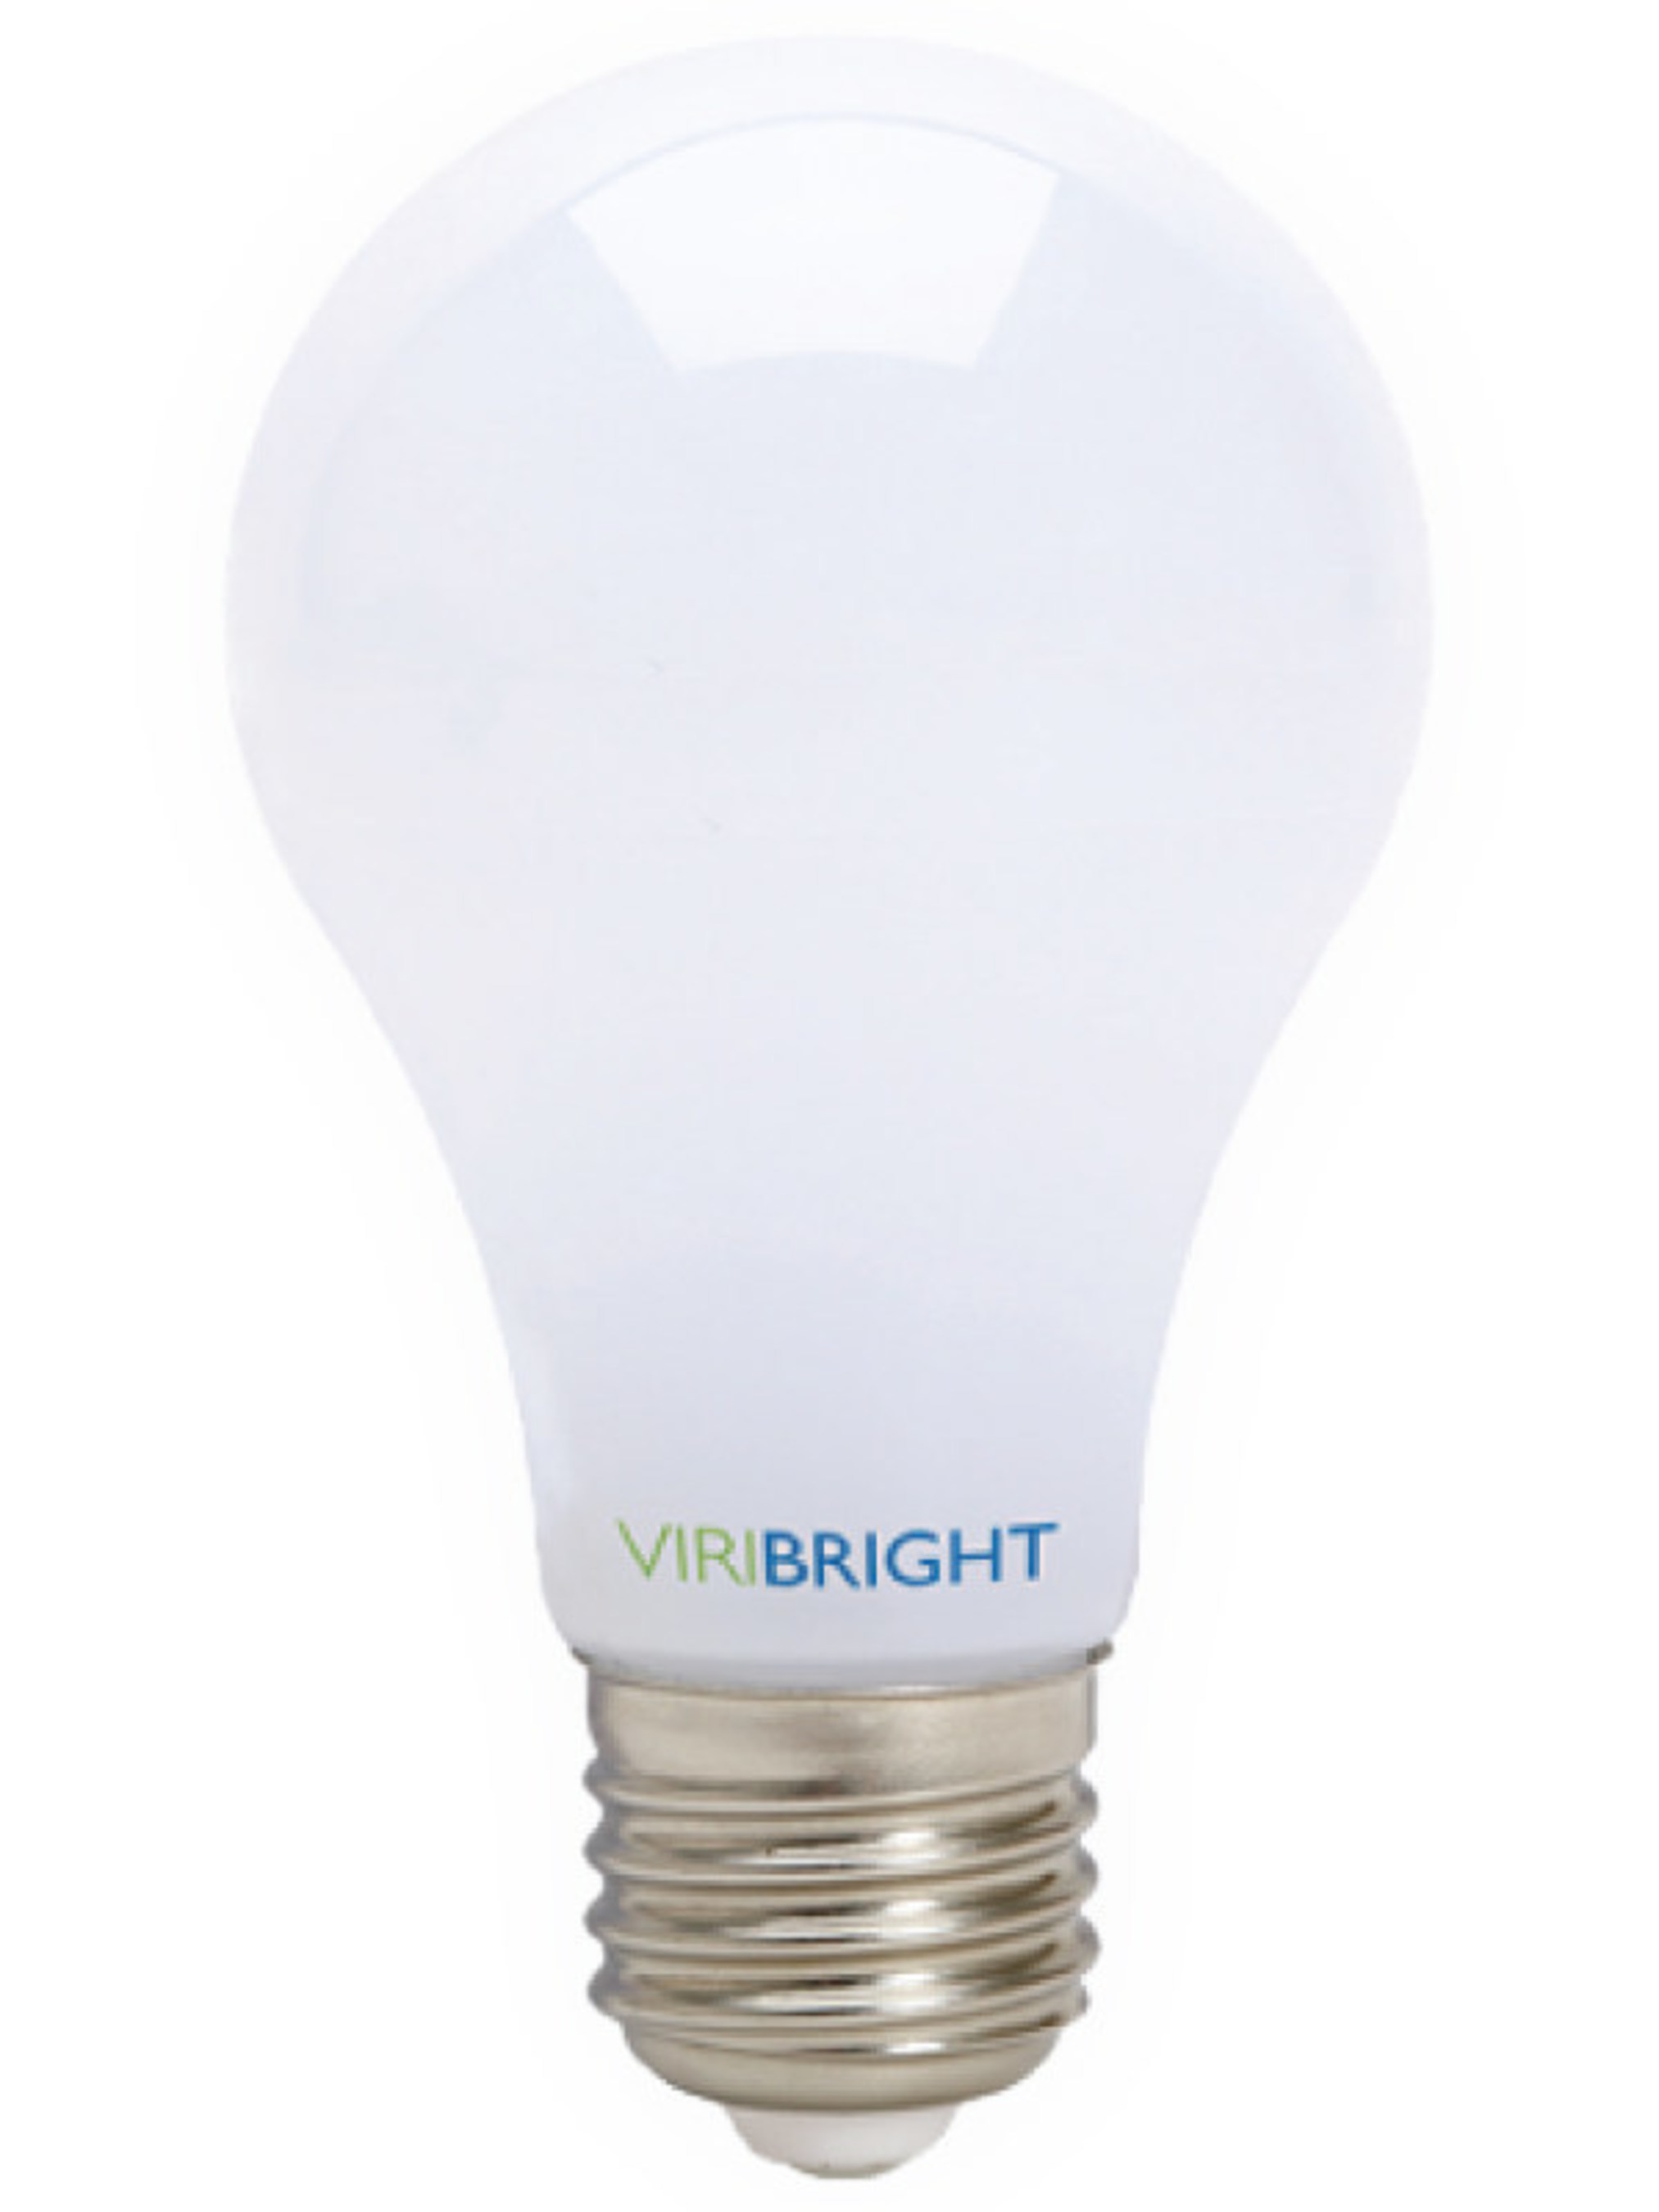 Viribright' Lighting Announces their Participation in the 2016 Orgill Fall Market in Booth 4657 at the Sands Exposition and Convention Center in Las Vegas, NV, August 25